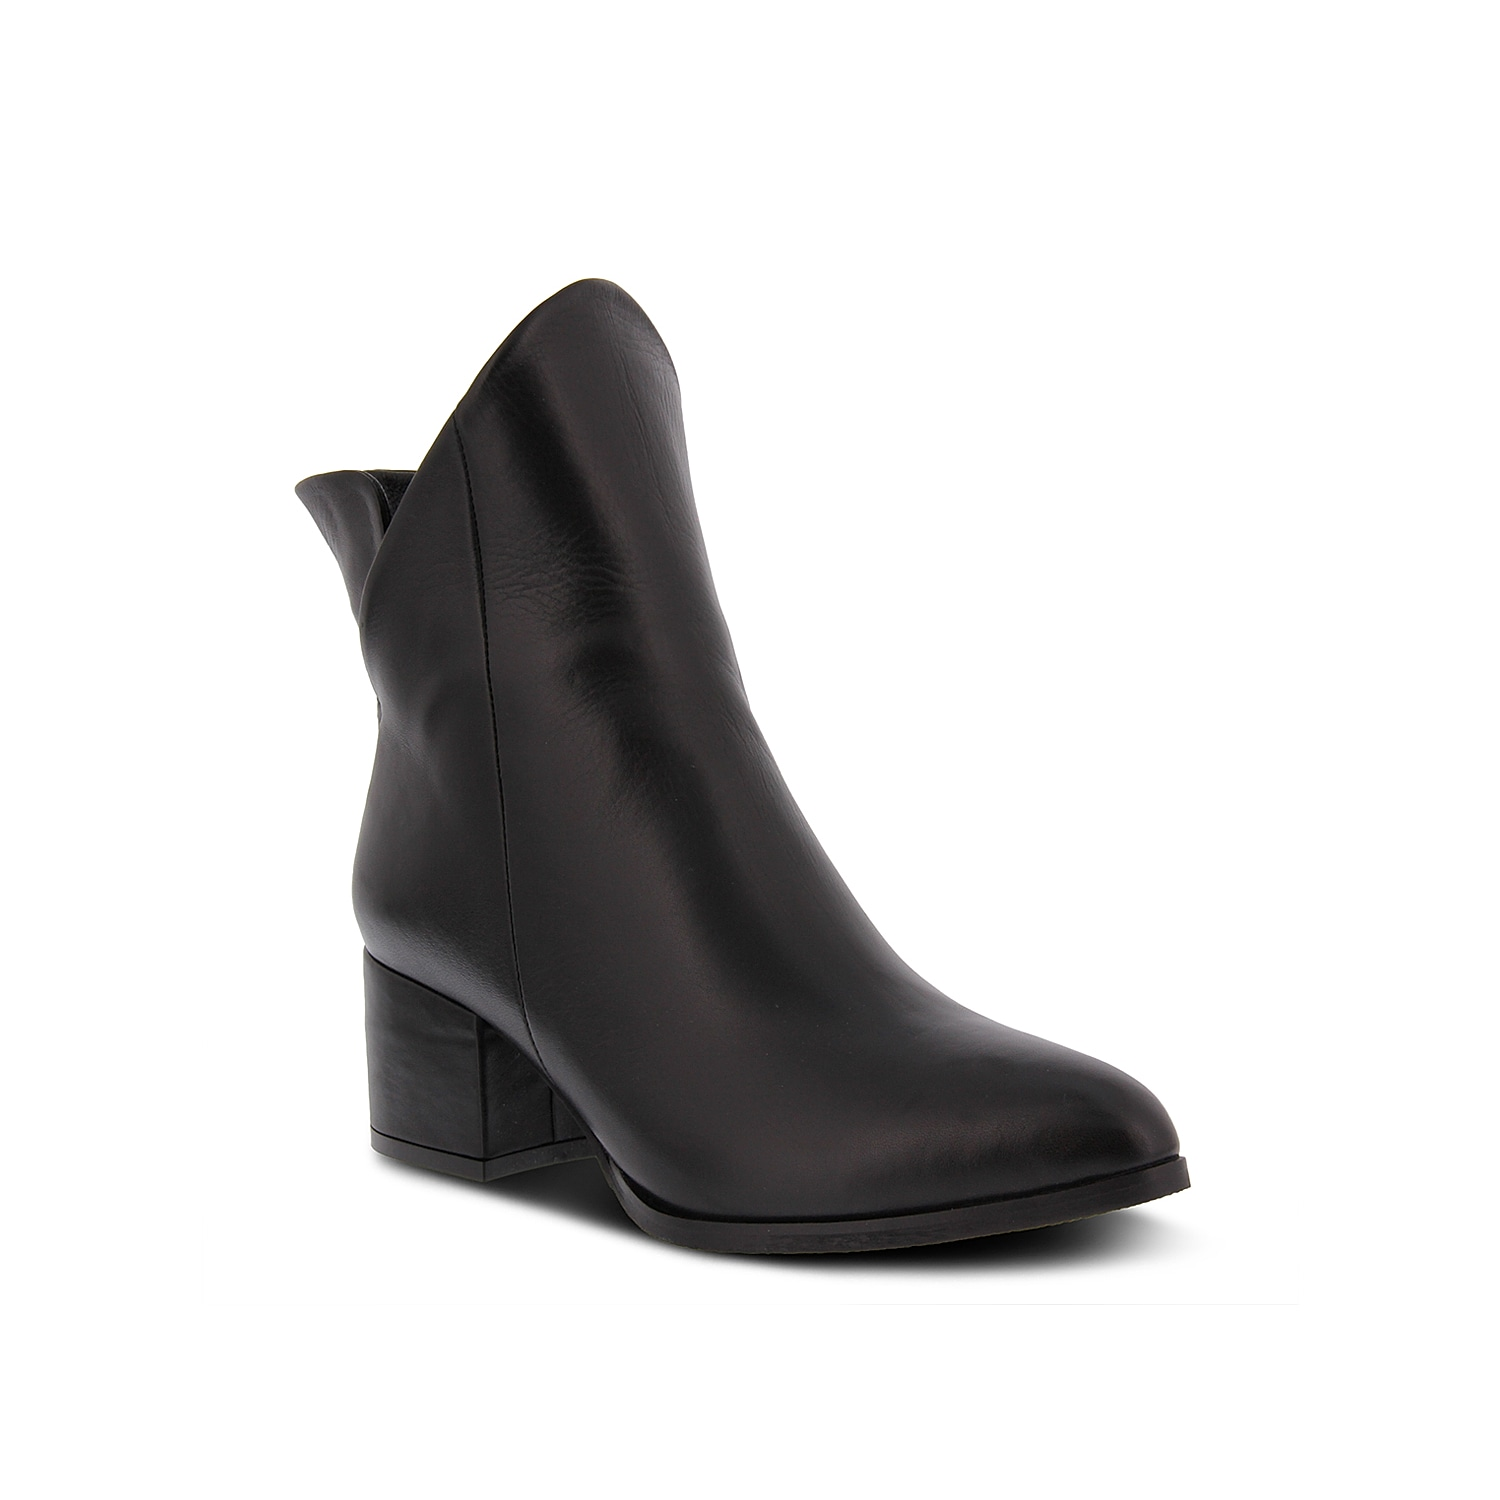 Turn heads in the Priscila bootie from Spring Step. This leather pair features an asymmetrical topline and pointed toe for a sleek silhouette.Click here for Boot Measuring Guide.